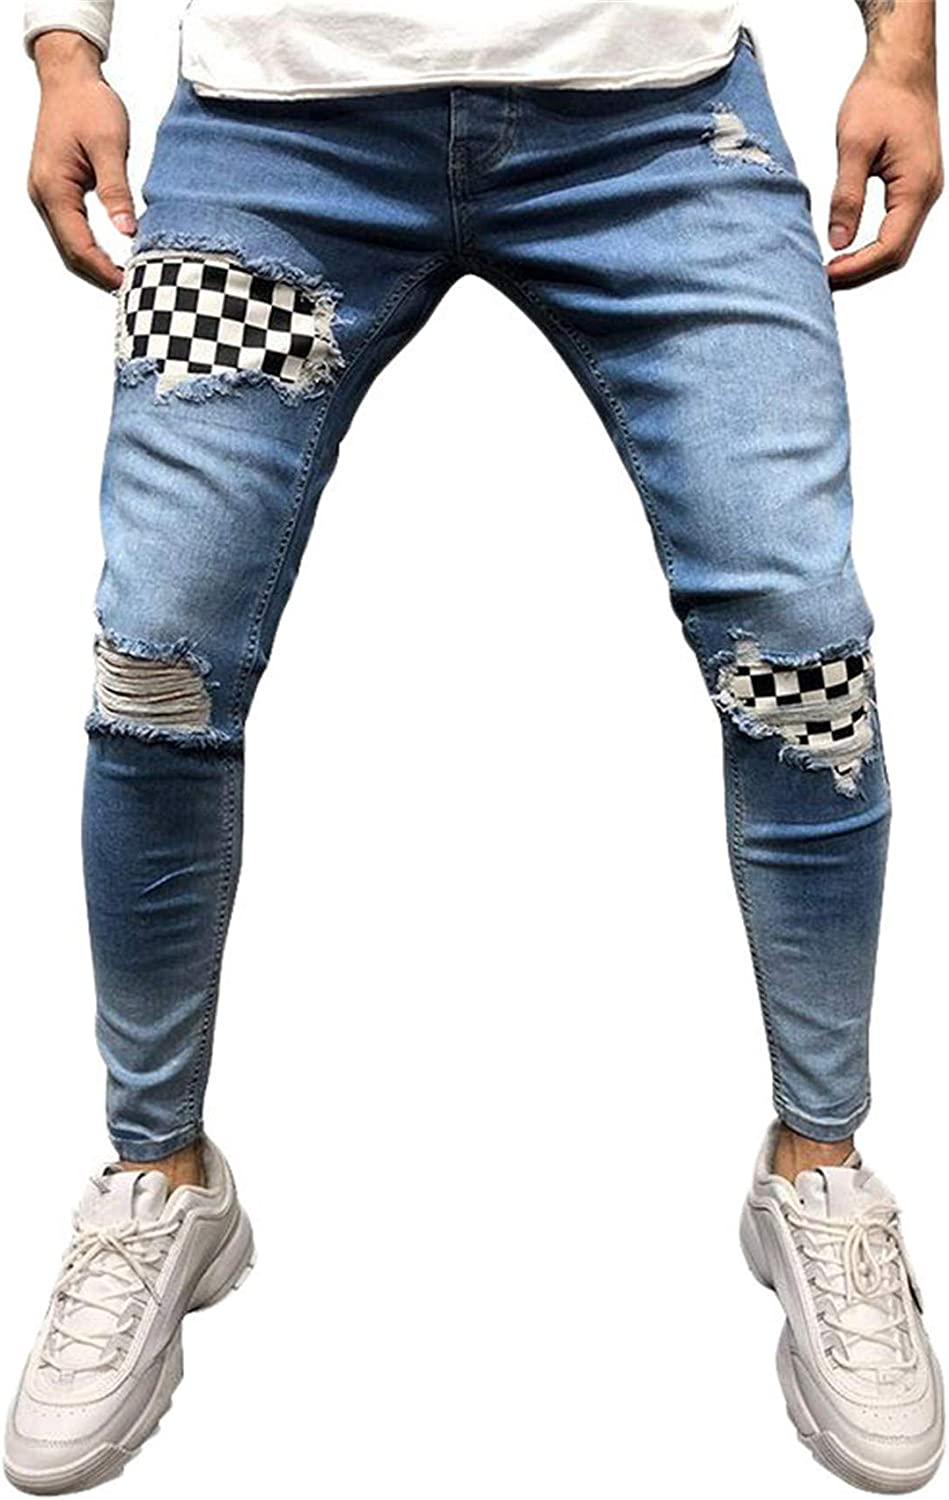 Outstanding Andongnywell Free Shipping Cheap Bargain Gift Men's Skinny Moto Biker St Ripped Destroyed Fashion